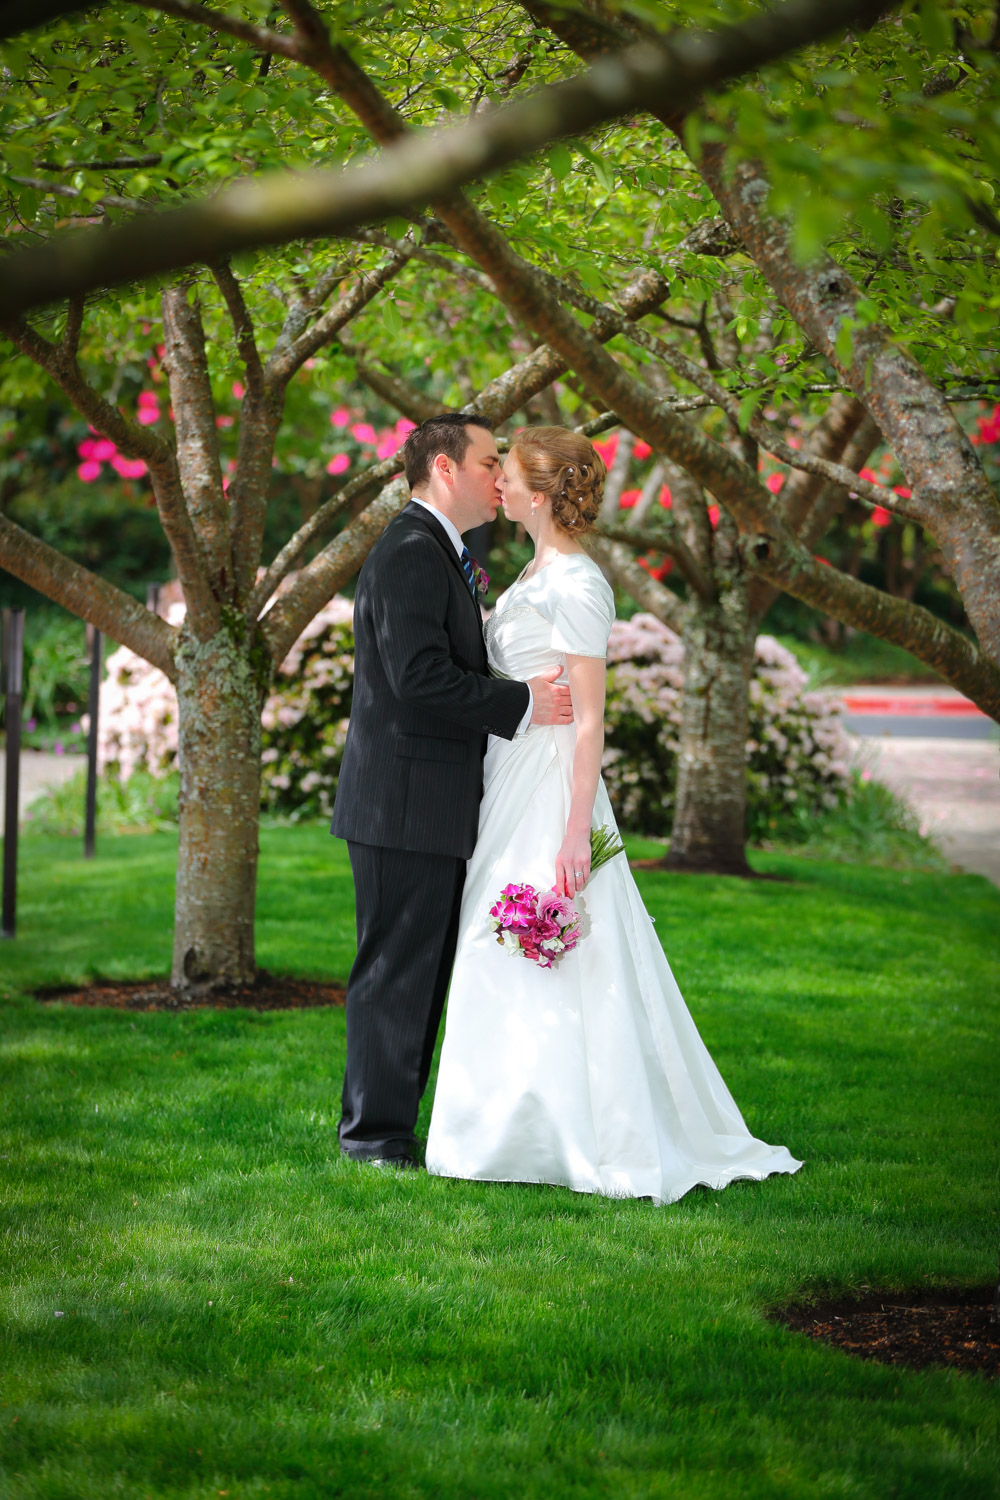 Wedding Photos LDS Temple Bellevue Washington10.jpg